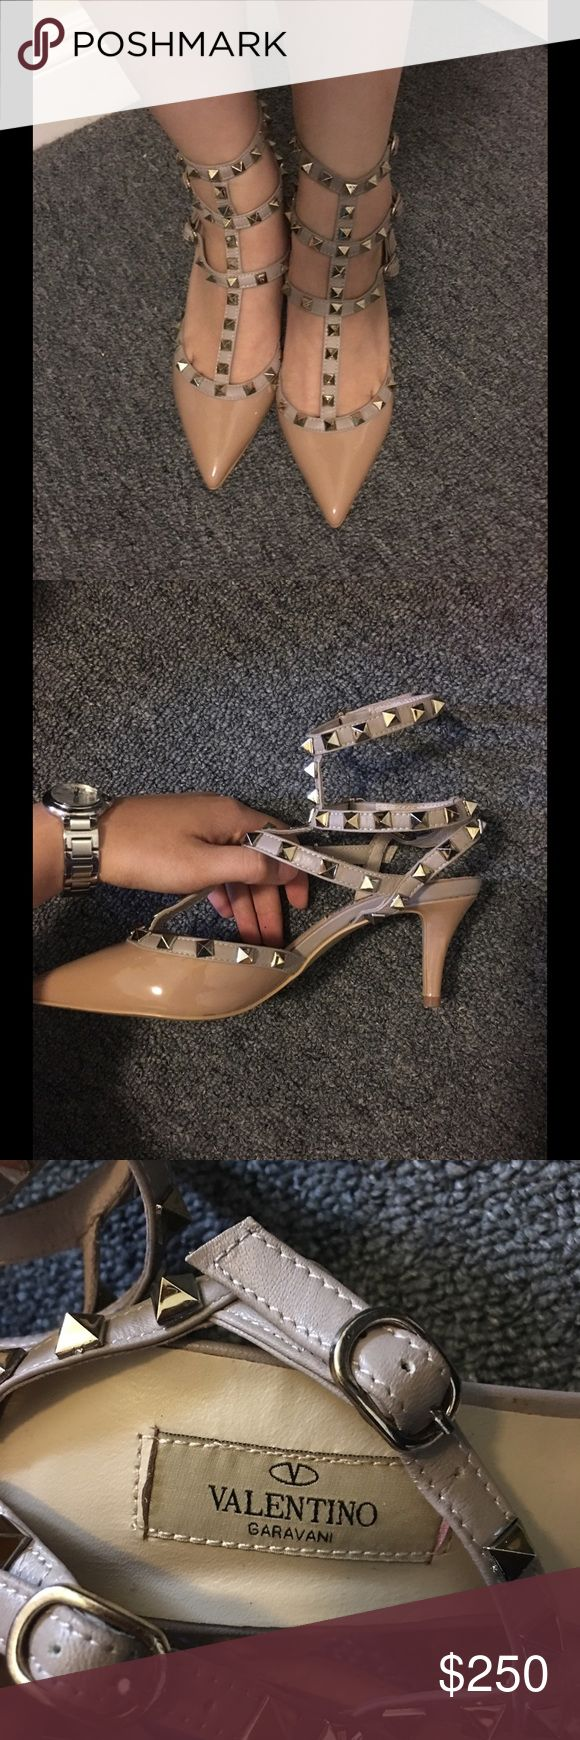 Valentino ankles strap heel Price reflect authenticity, 😉 high quality shoes. Comes with dust bag, final sale no return Shoes Heels